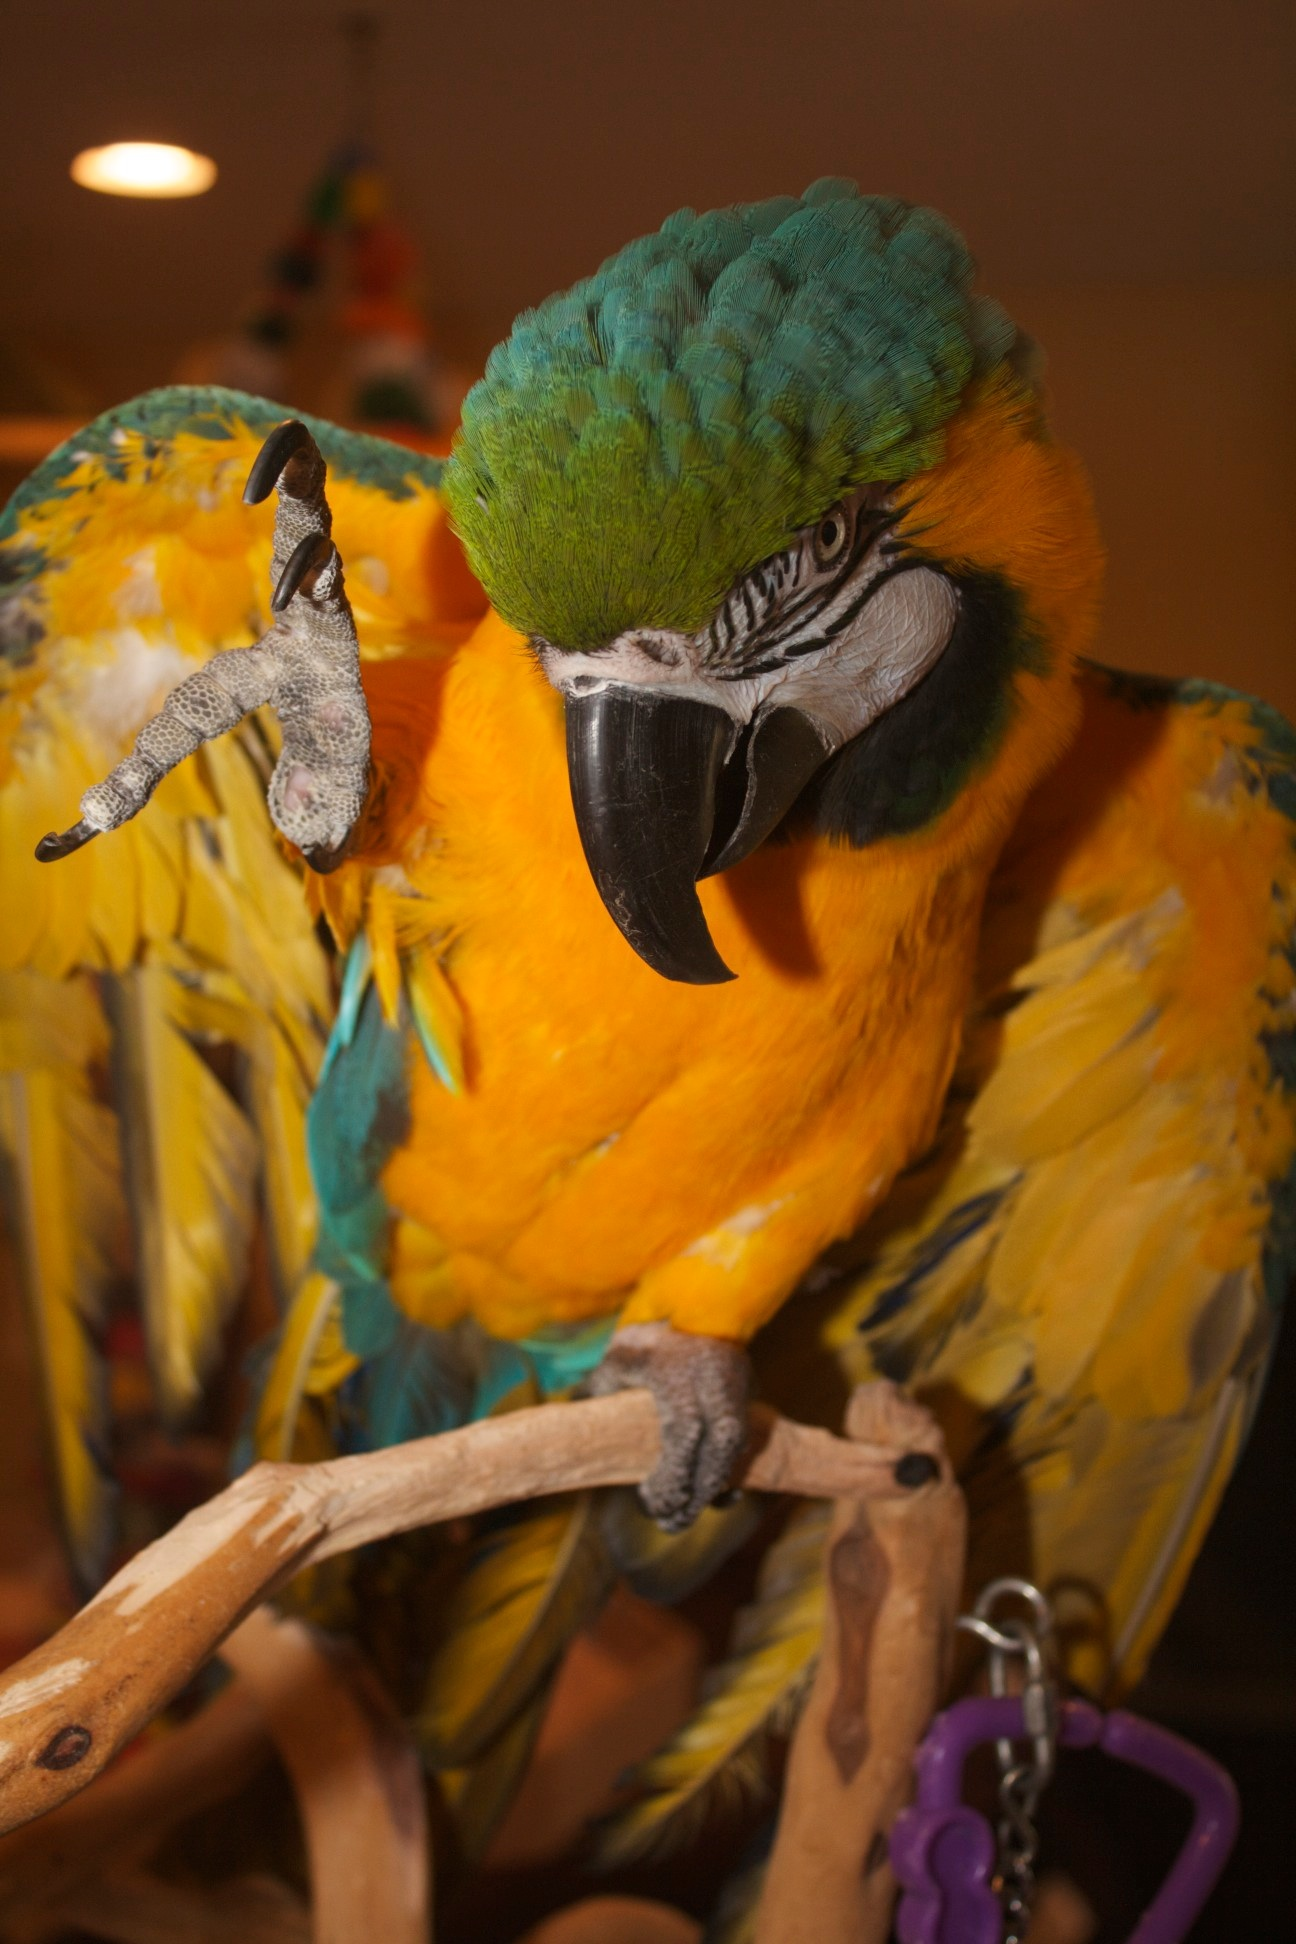 Barney - Blue & Gold Macaw